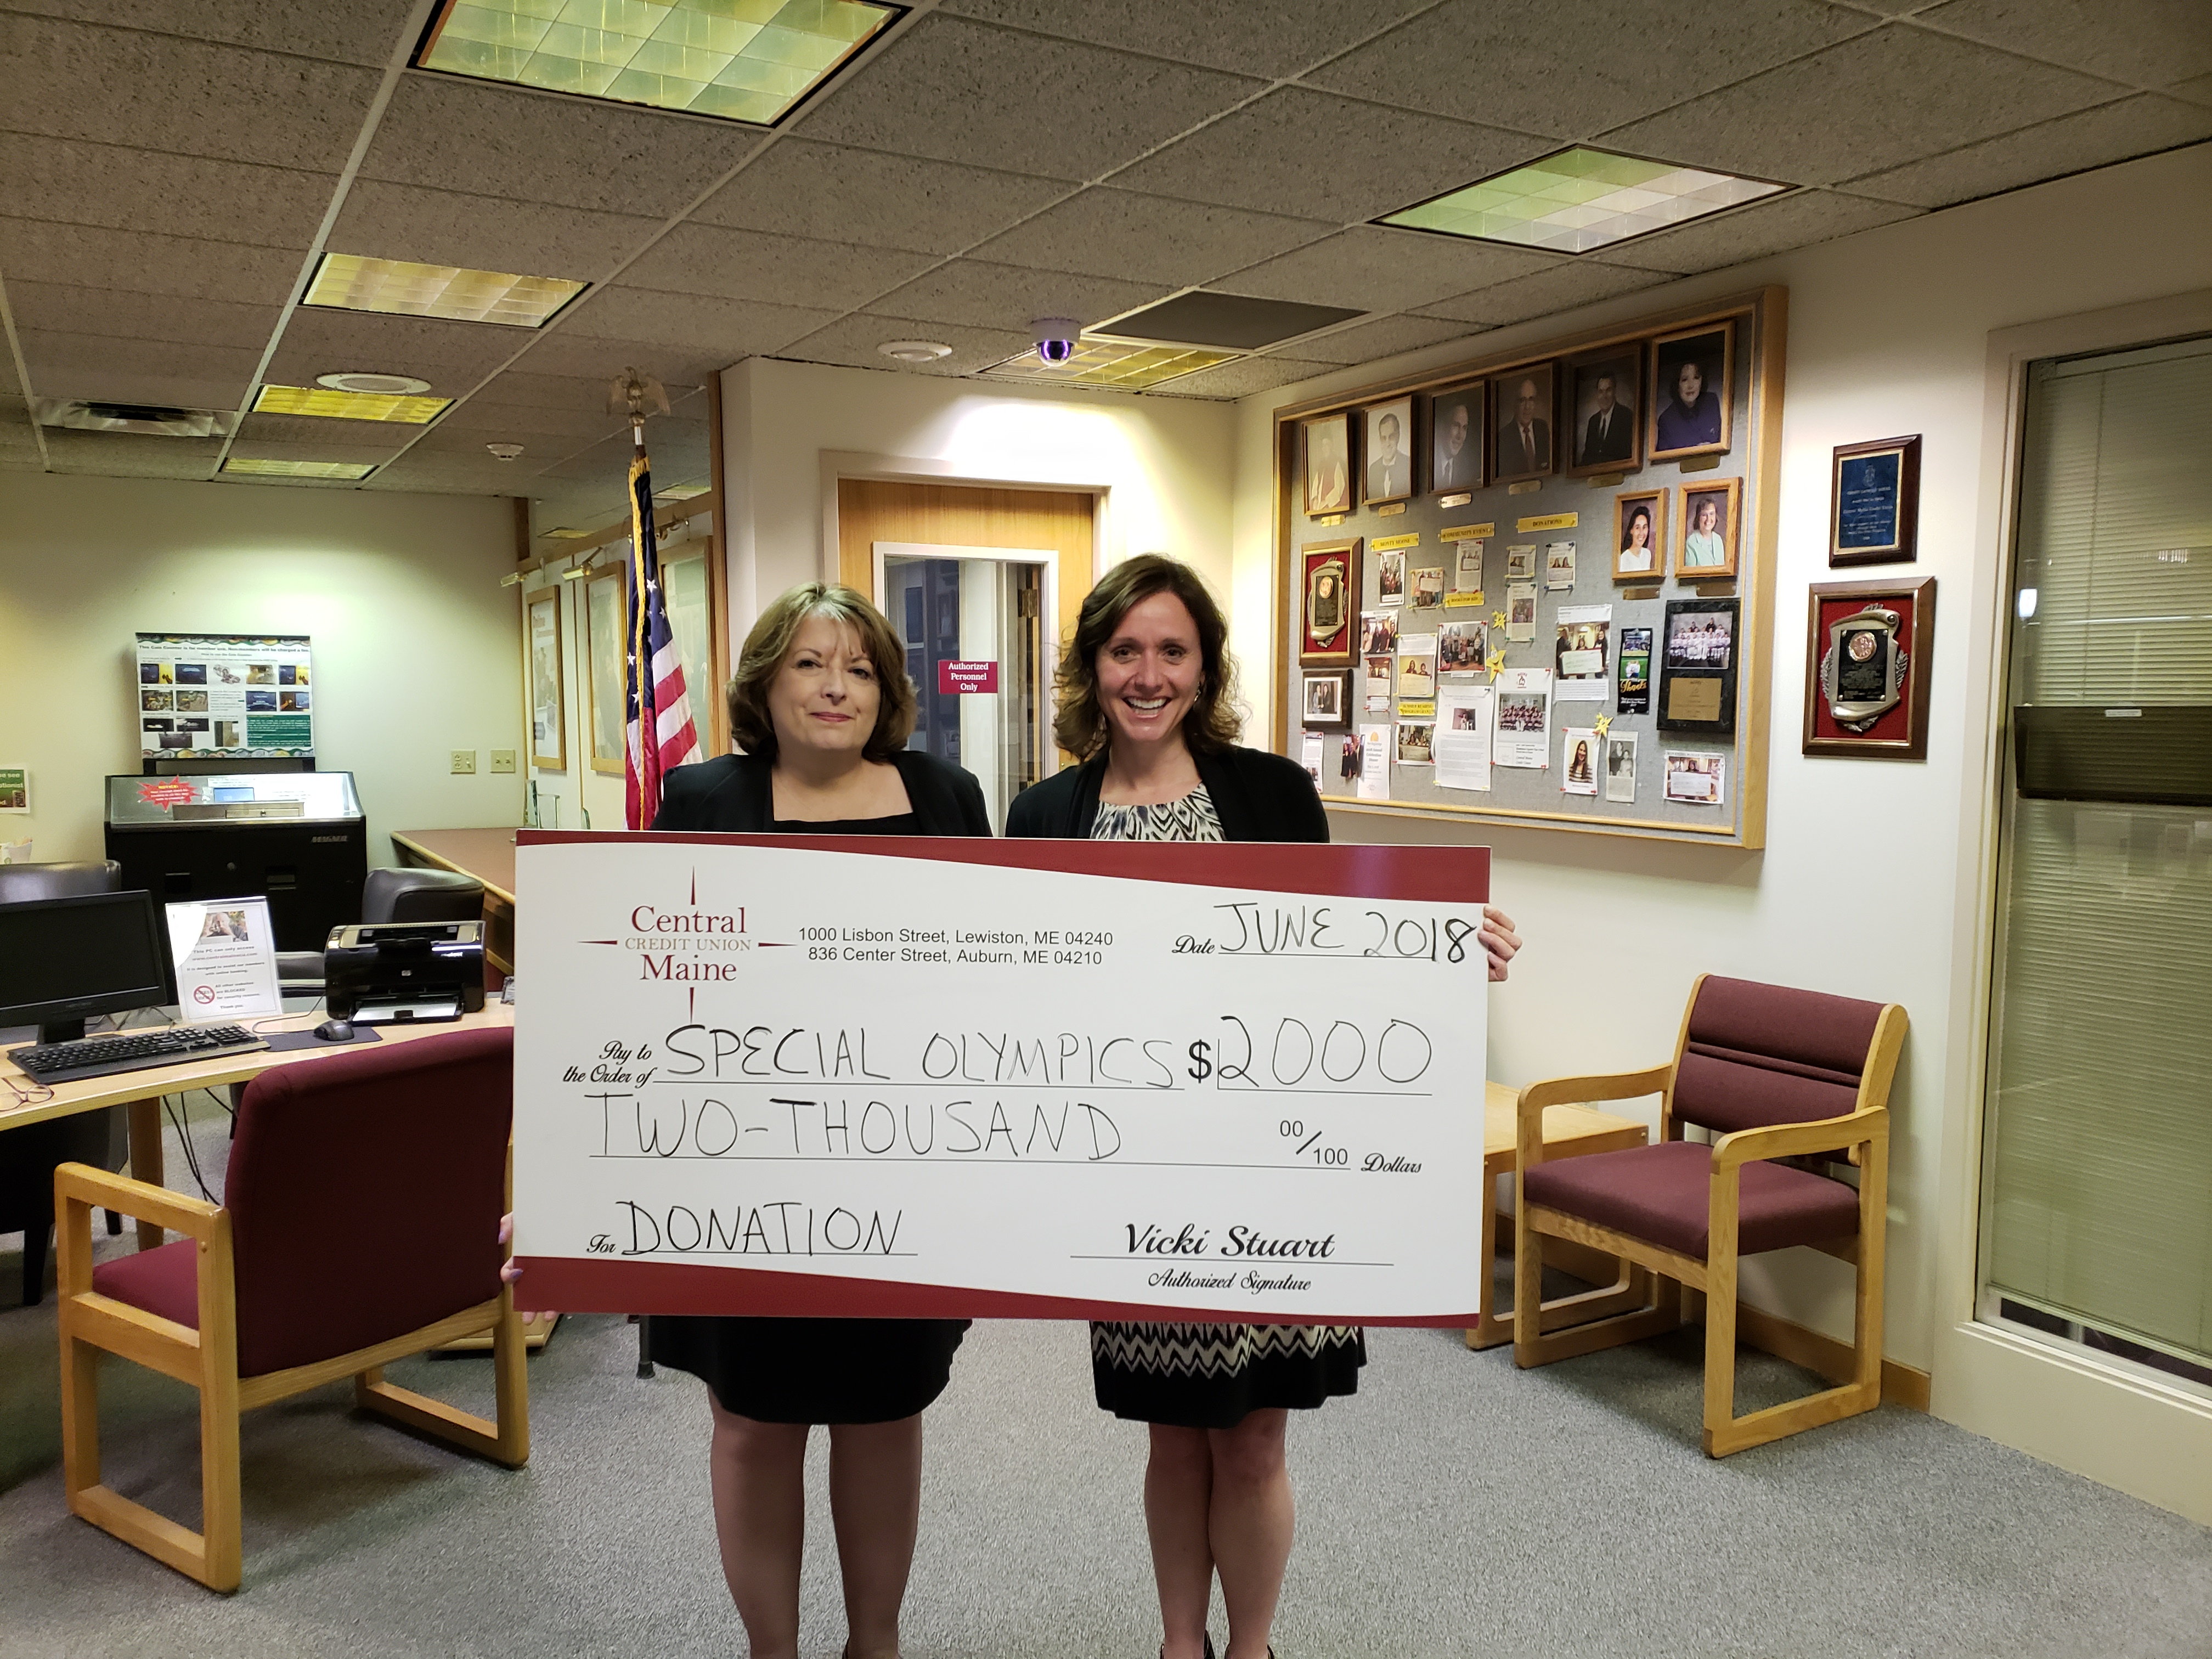 Central Maine Credit Union donated $2,000 to Maine's Special Olympics. Kim Daigle, Board member for Maine's Special Olympics and CEO of Insurance Trust happily accepts the check from Vicki Stuart